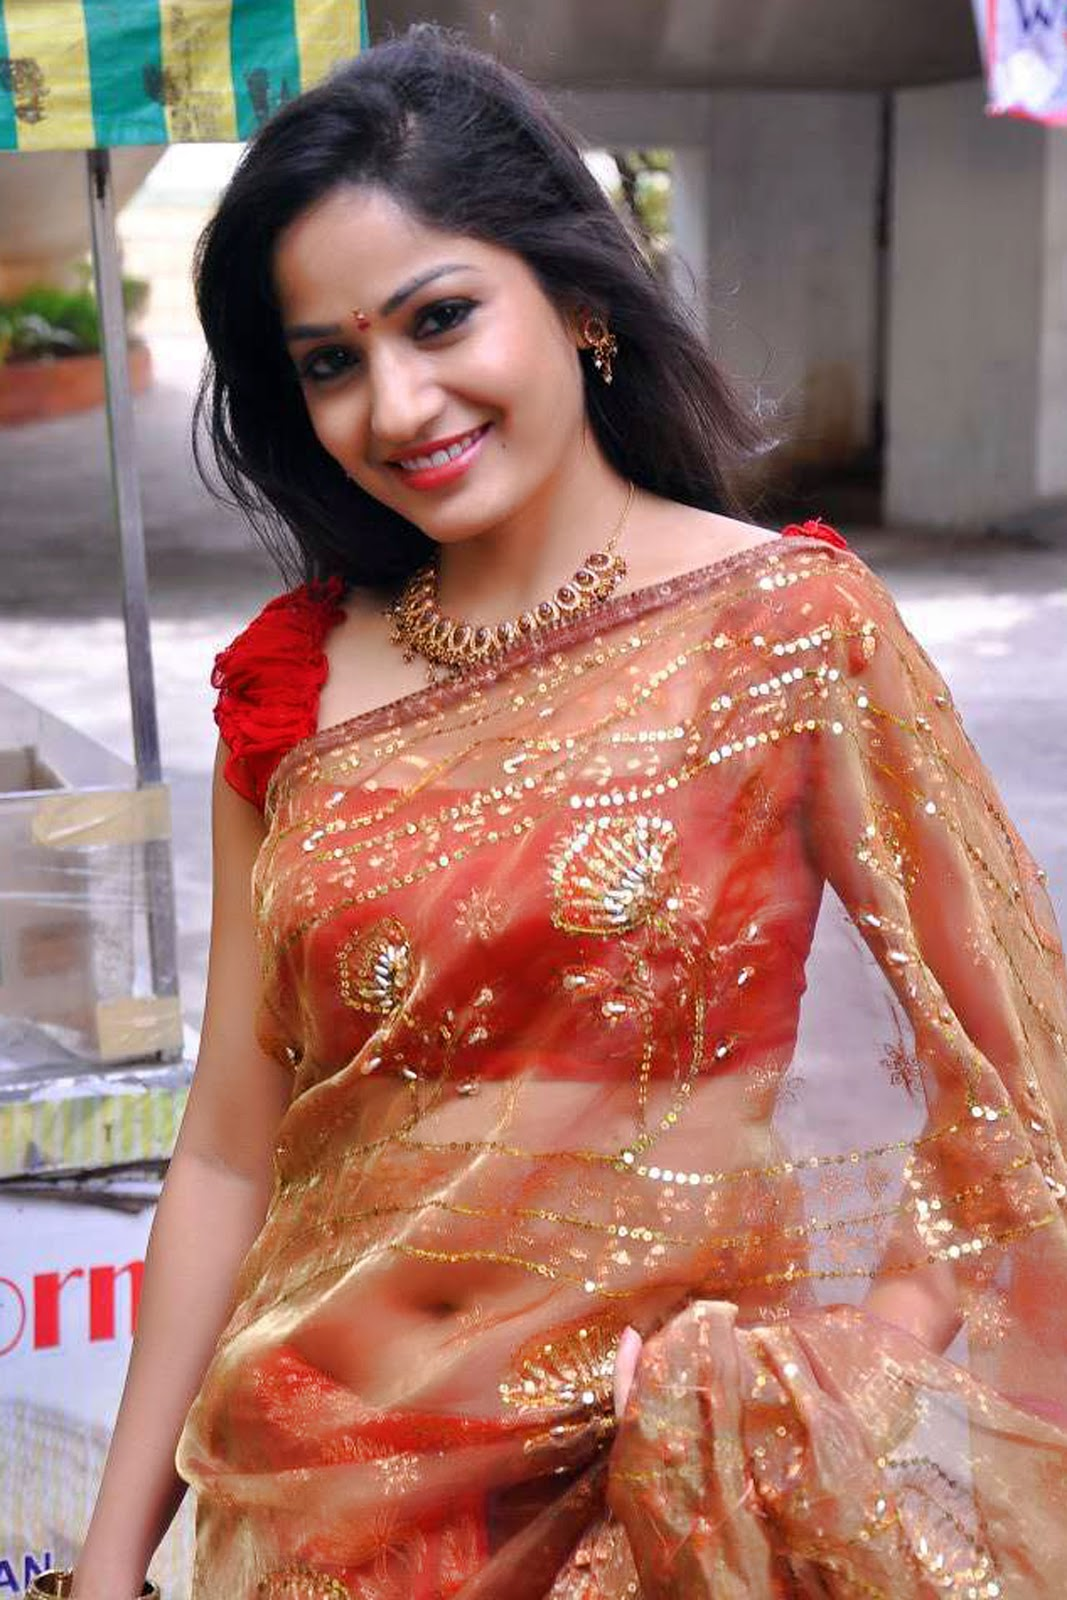 Telugu Actress In Saree New Hd Photo Shoot Wallpaper Free -1622